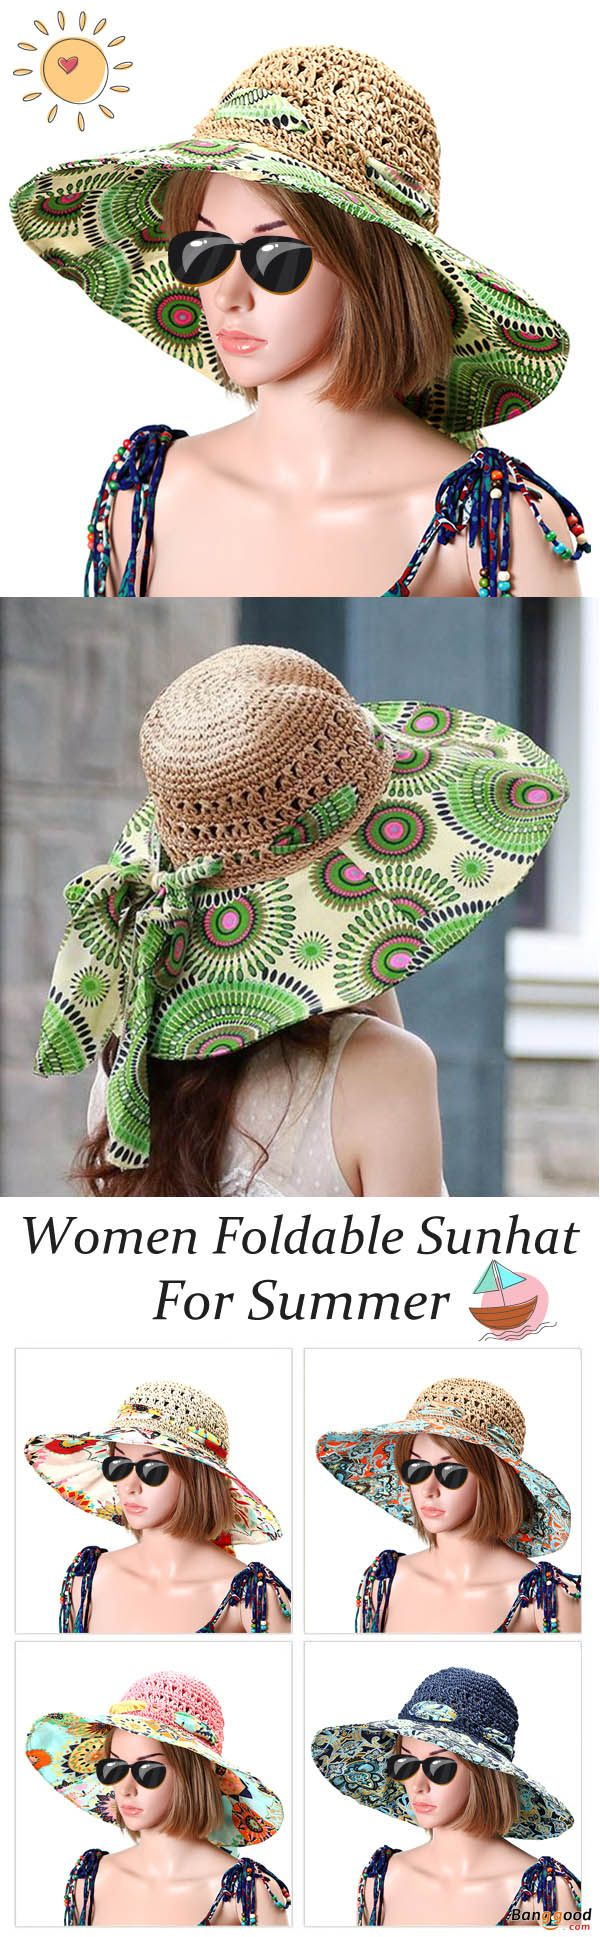 US$11.99+Free shipping. Women Foldable Sunhat, Beach Hat, Sunscreen Visor Cap, Sports Cap. Wide Brim, Breathable, UV-Protection. Varies of colors for your choice.